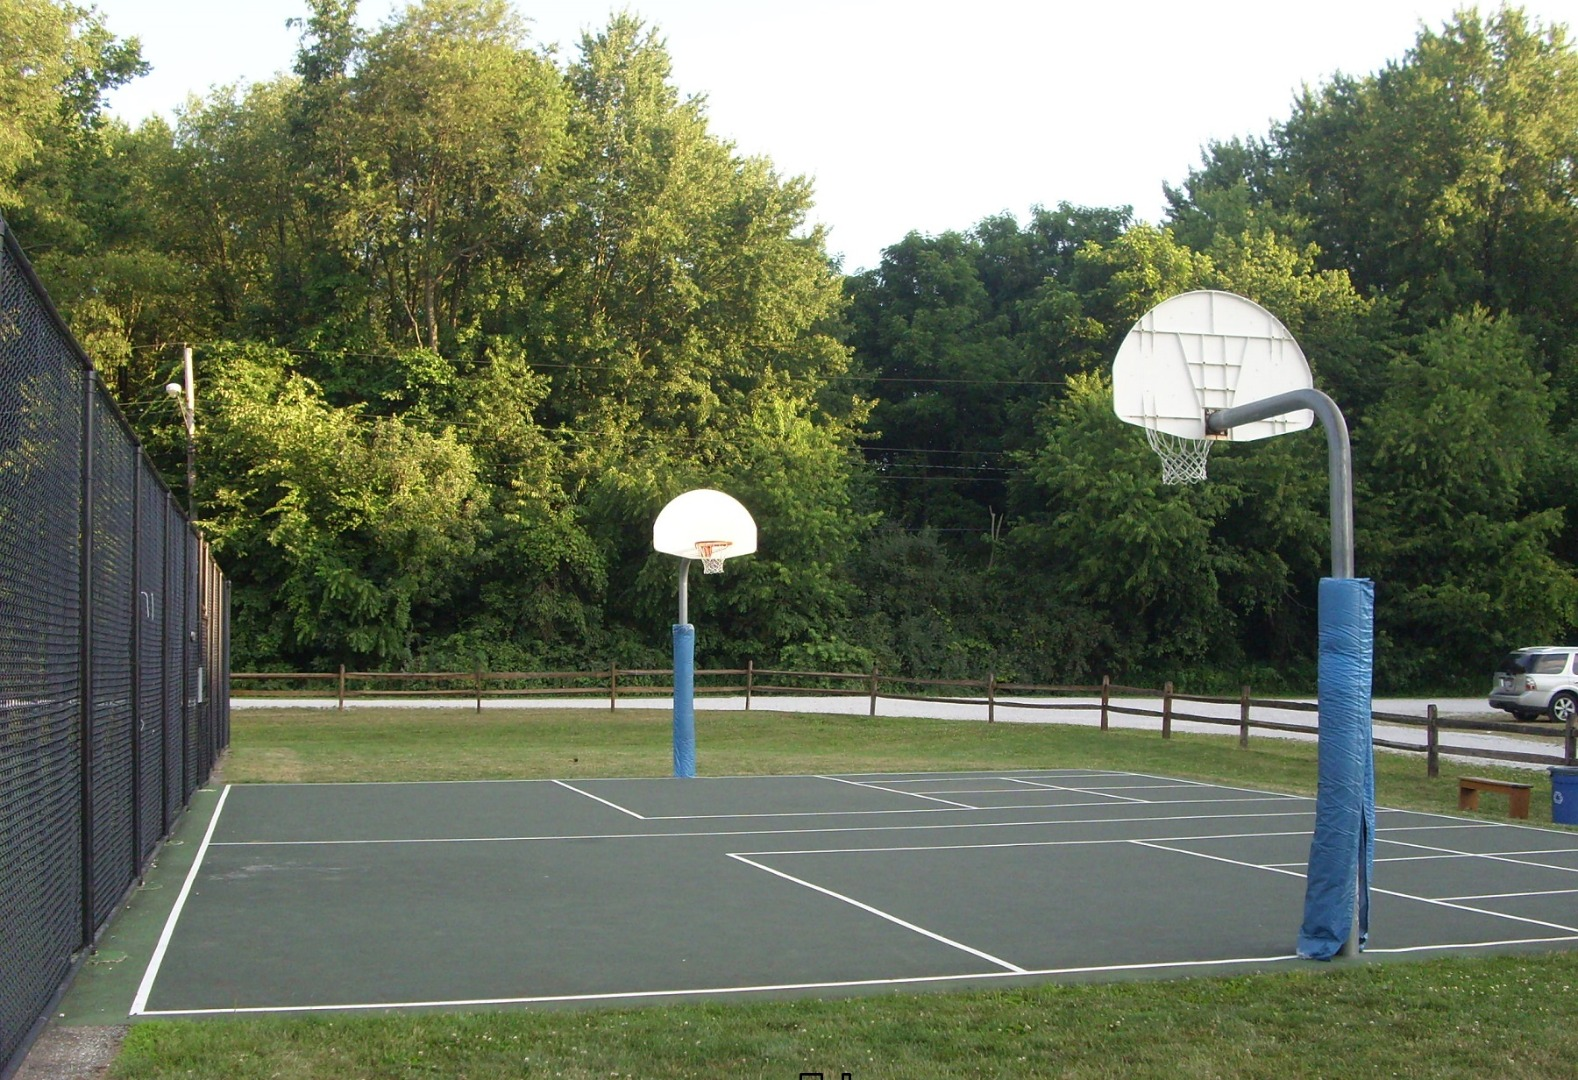 courts shaw jcc of akron